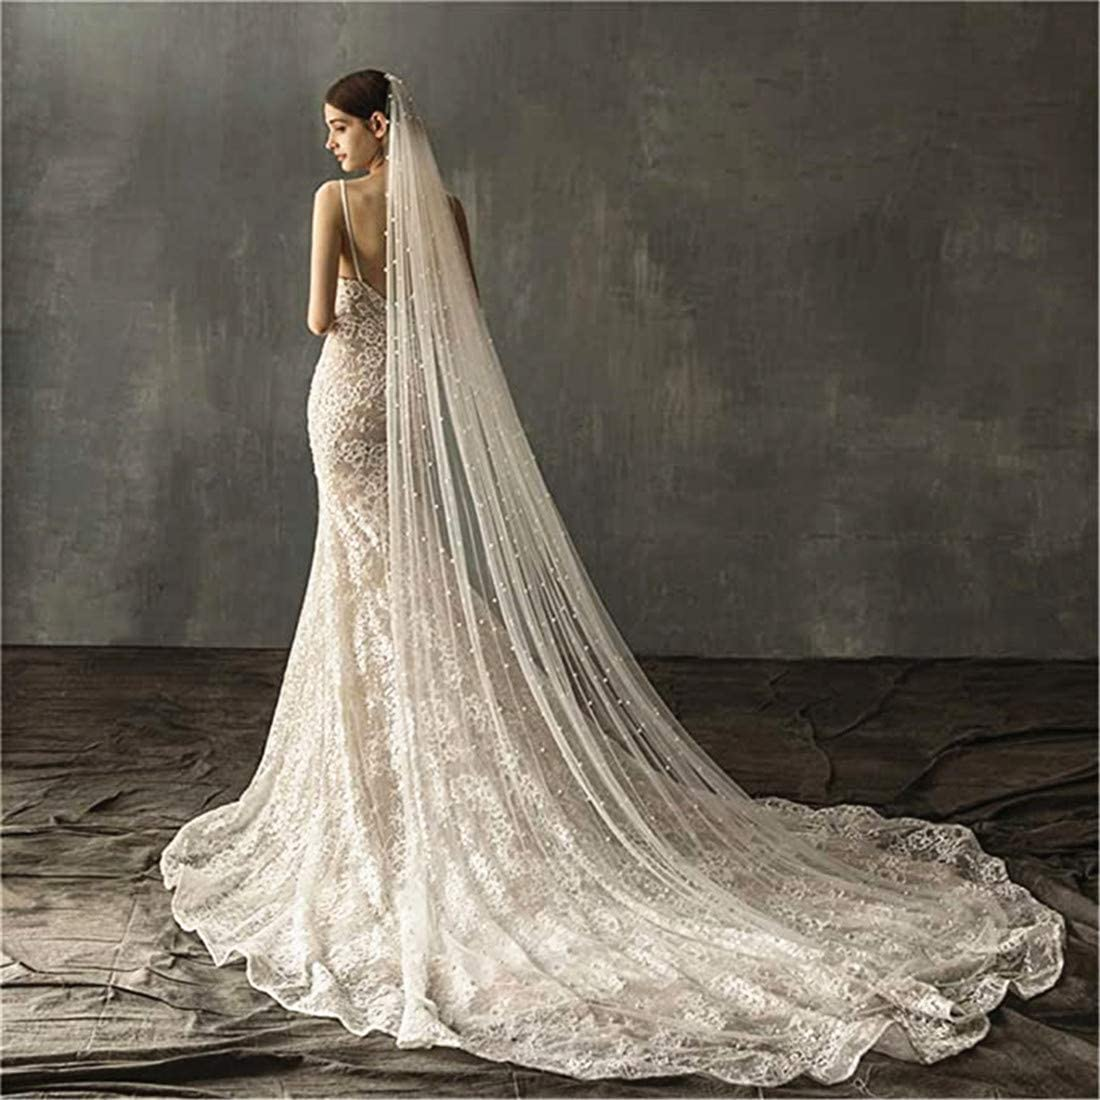 Pearl Wedding Veil for Bride Long Bridal Veil with Beading Comb Cathedral Length